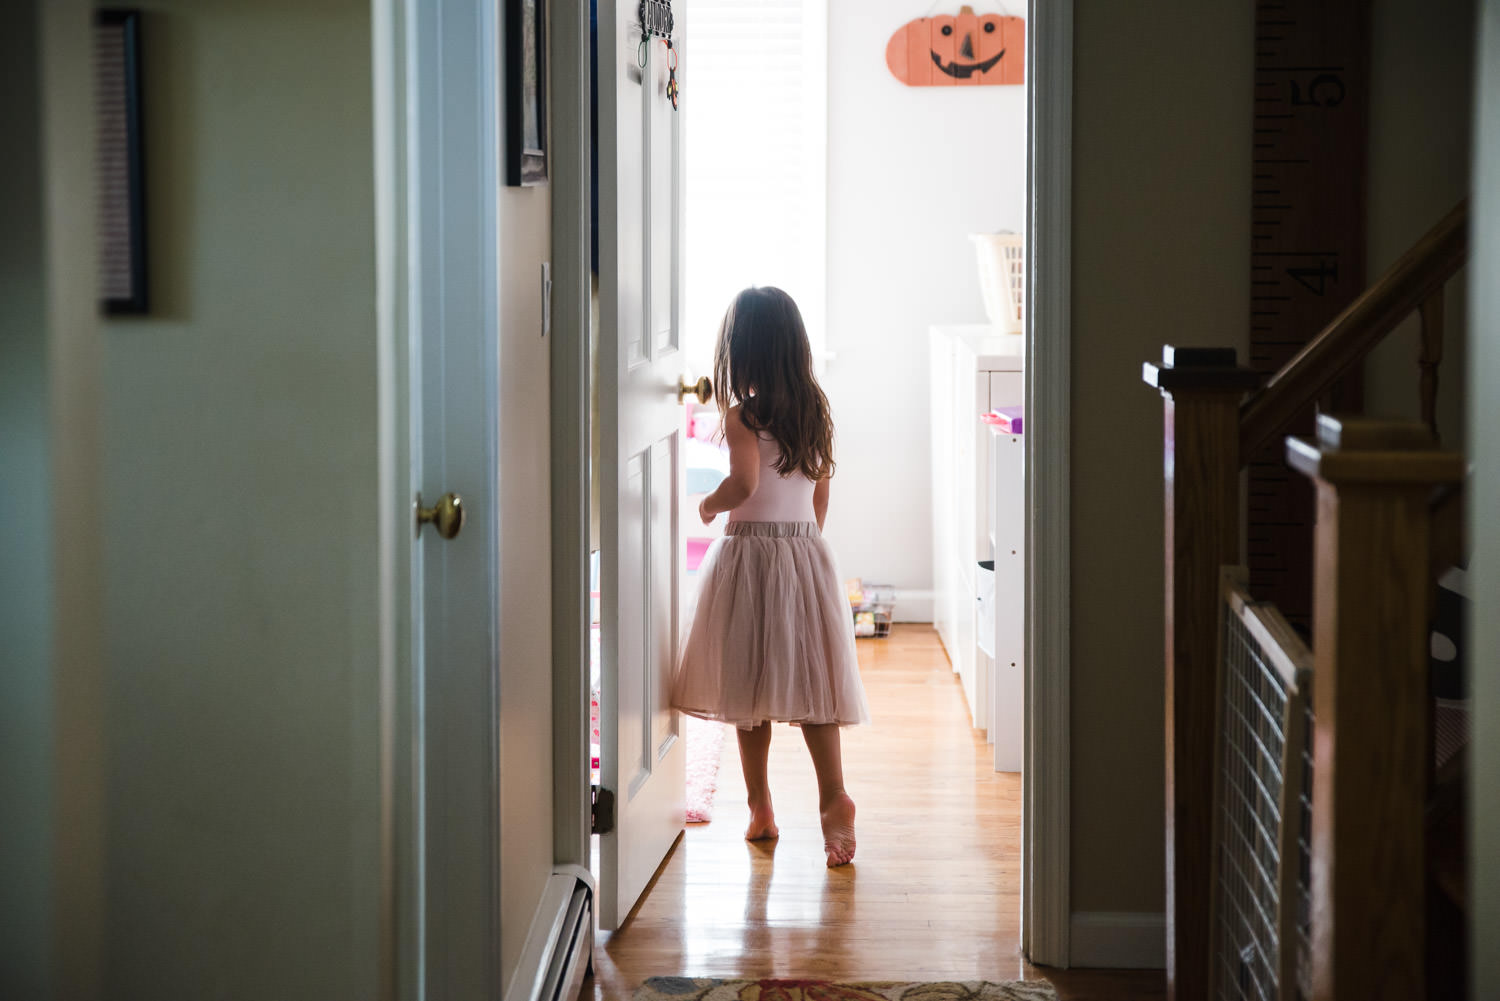 A little girl tiptoes down a hallway.